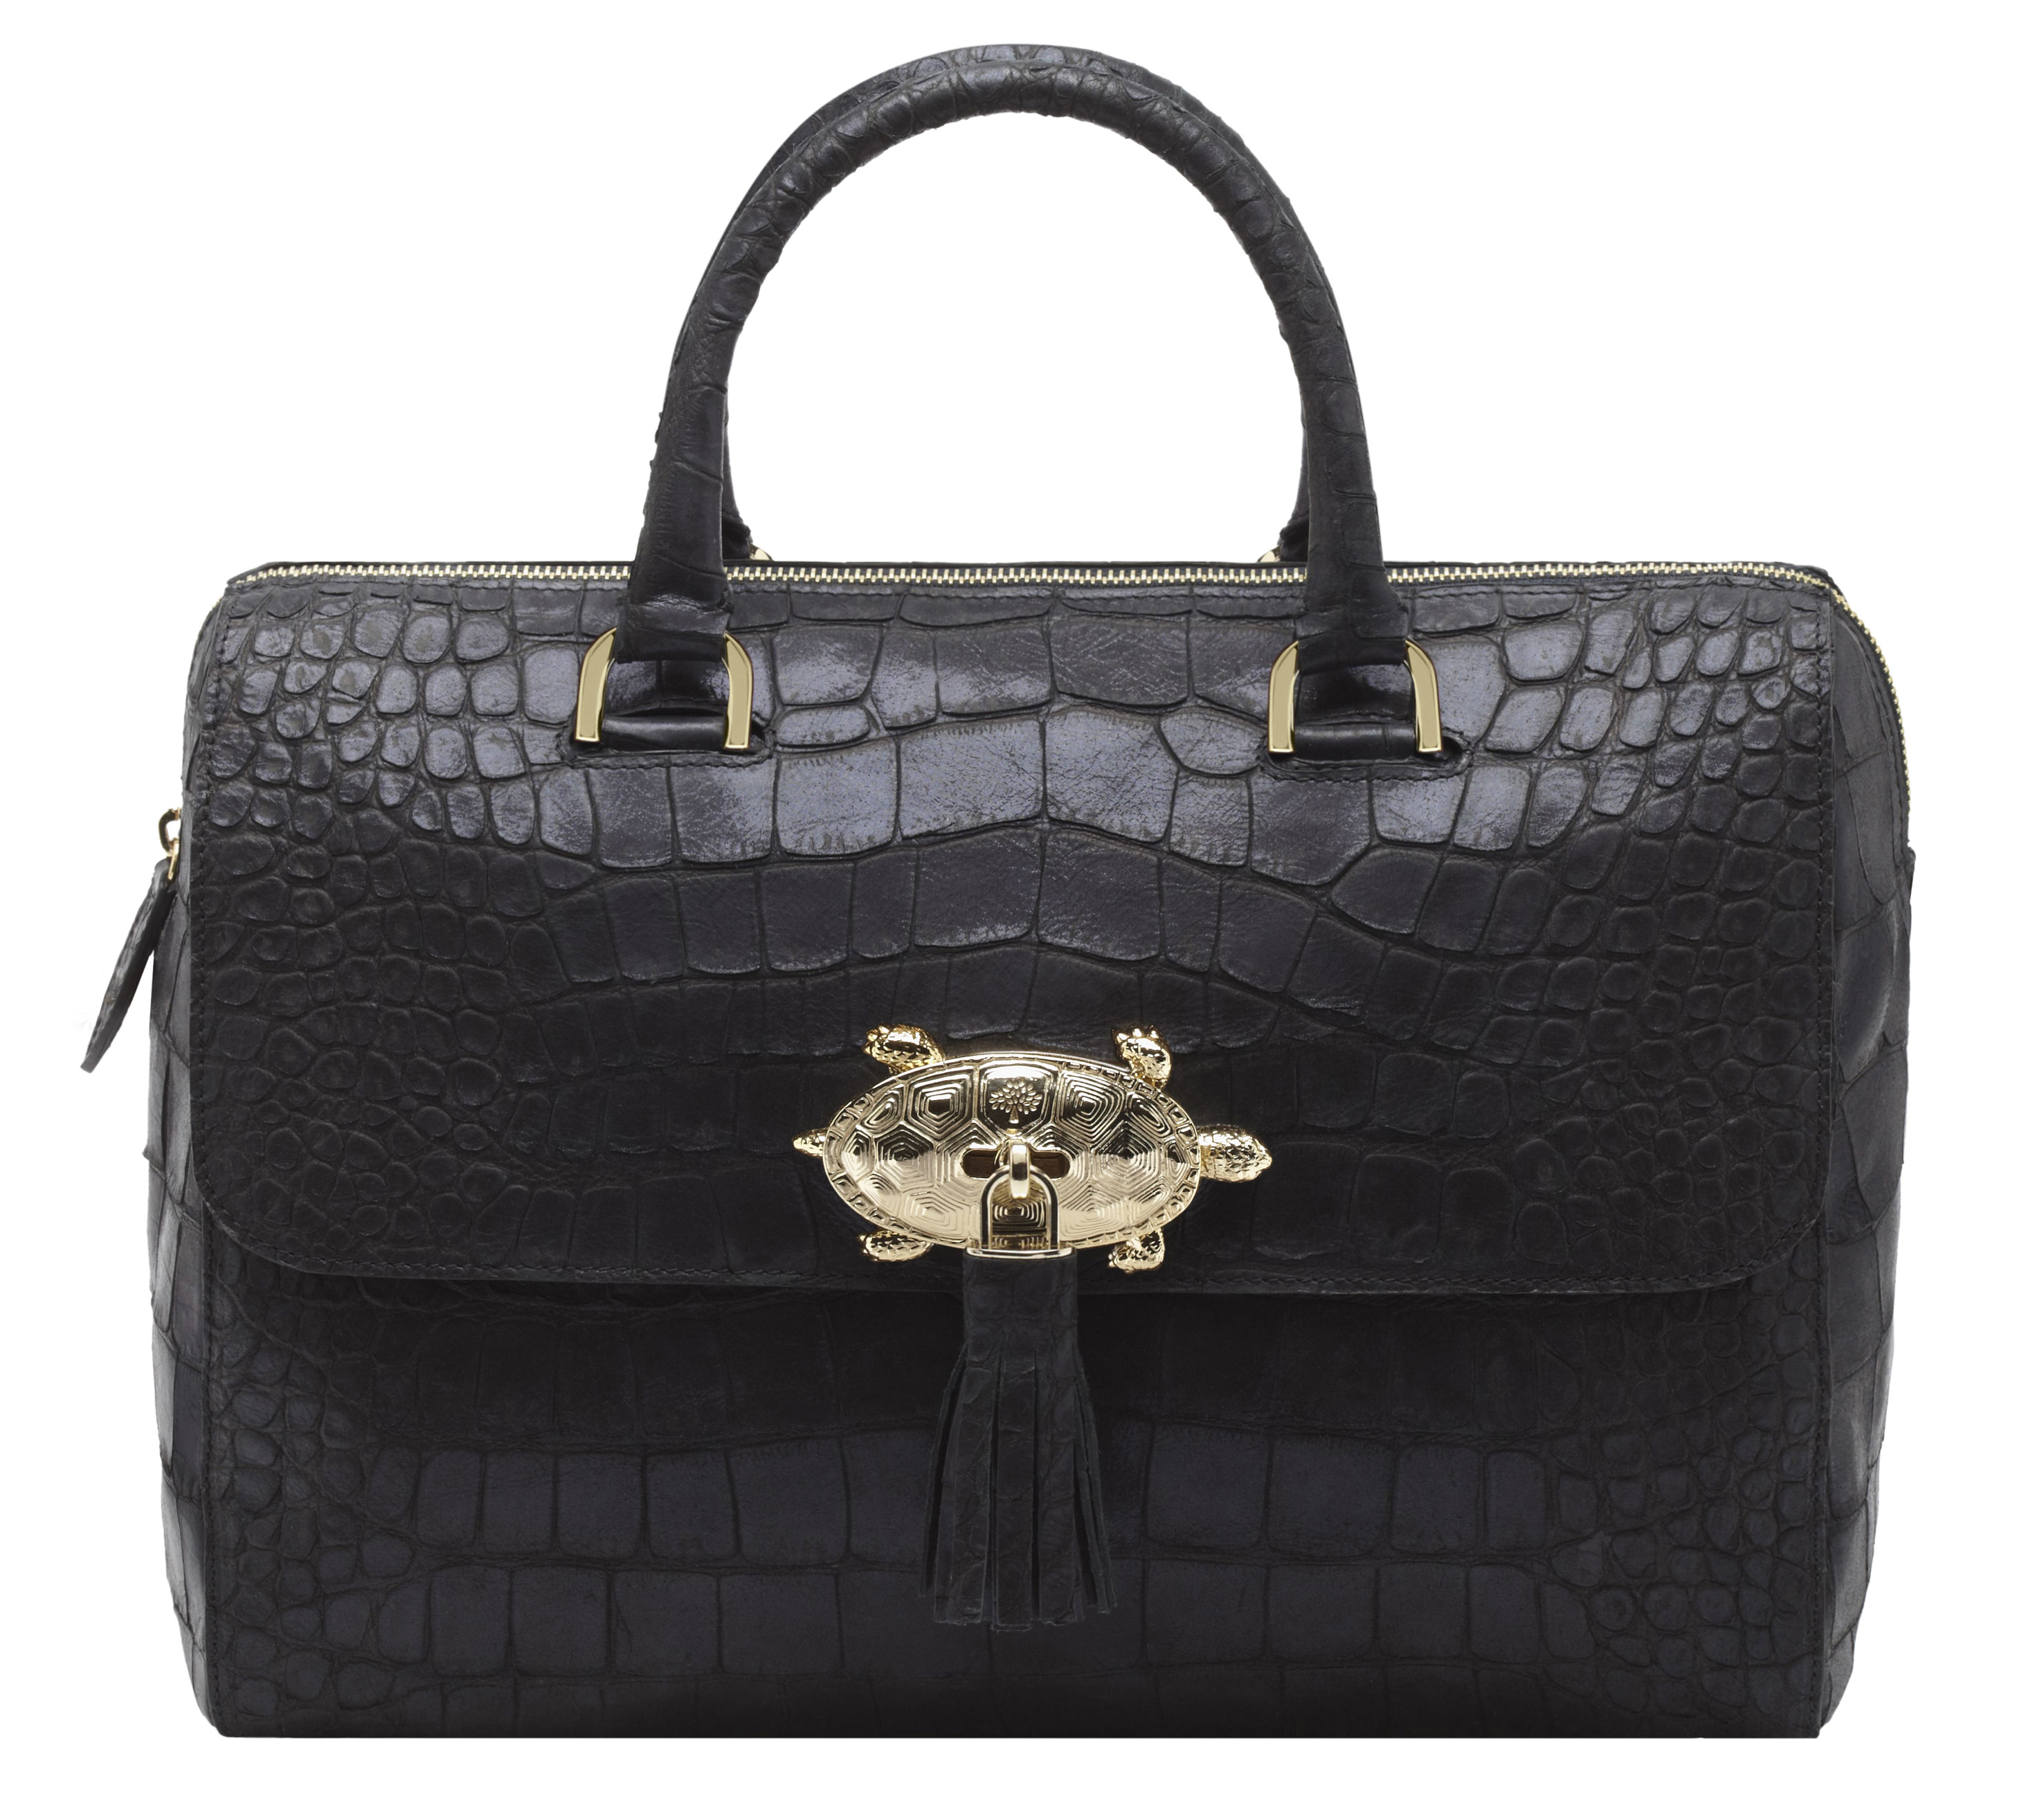 Del rey Sparkle croc print in ink blue was £1,400 now £980